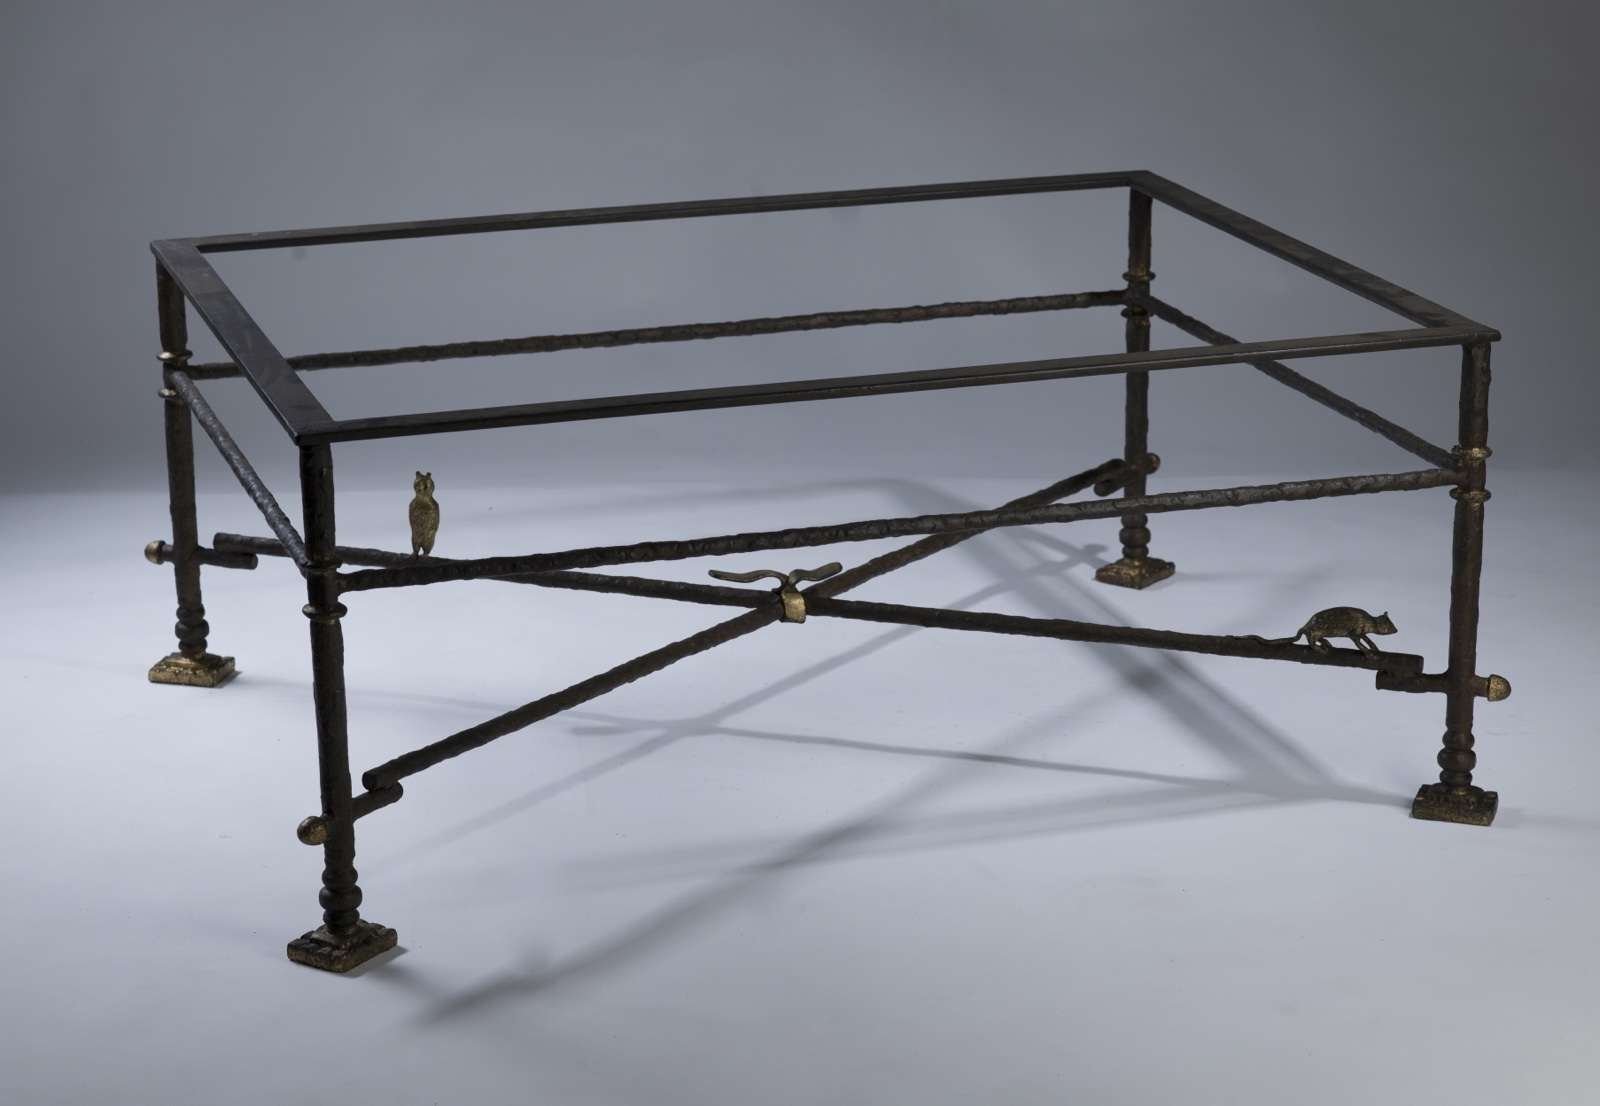 Wrought Iron Coffee Table In Brown Bronze, Distressed Gold Throughout Latest Iron Glass Coffee Table (View 11 of 20)